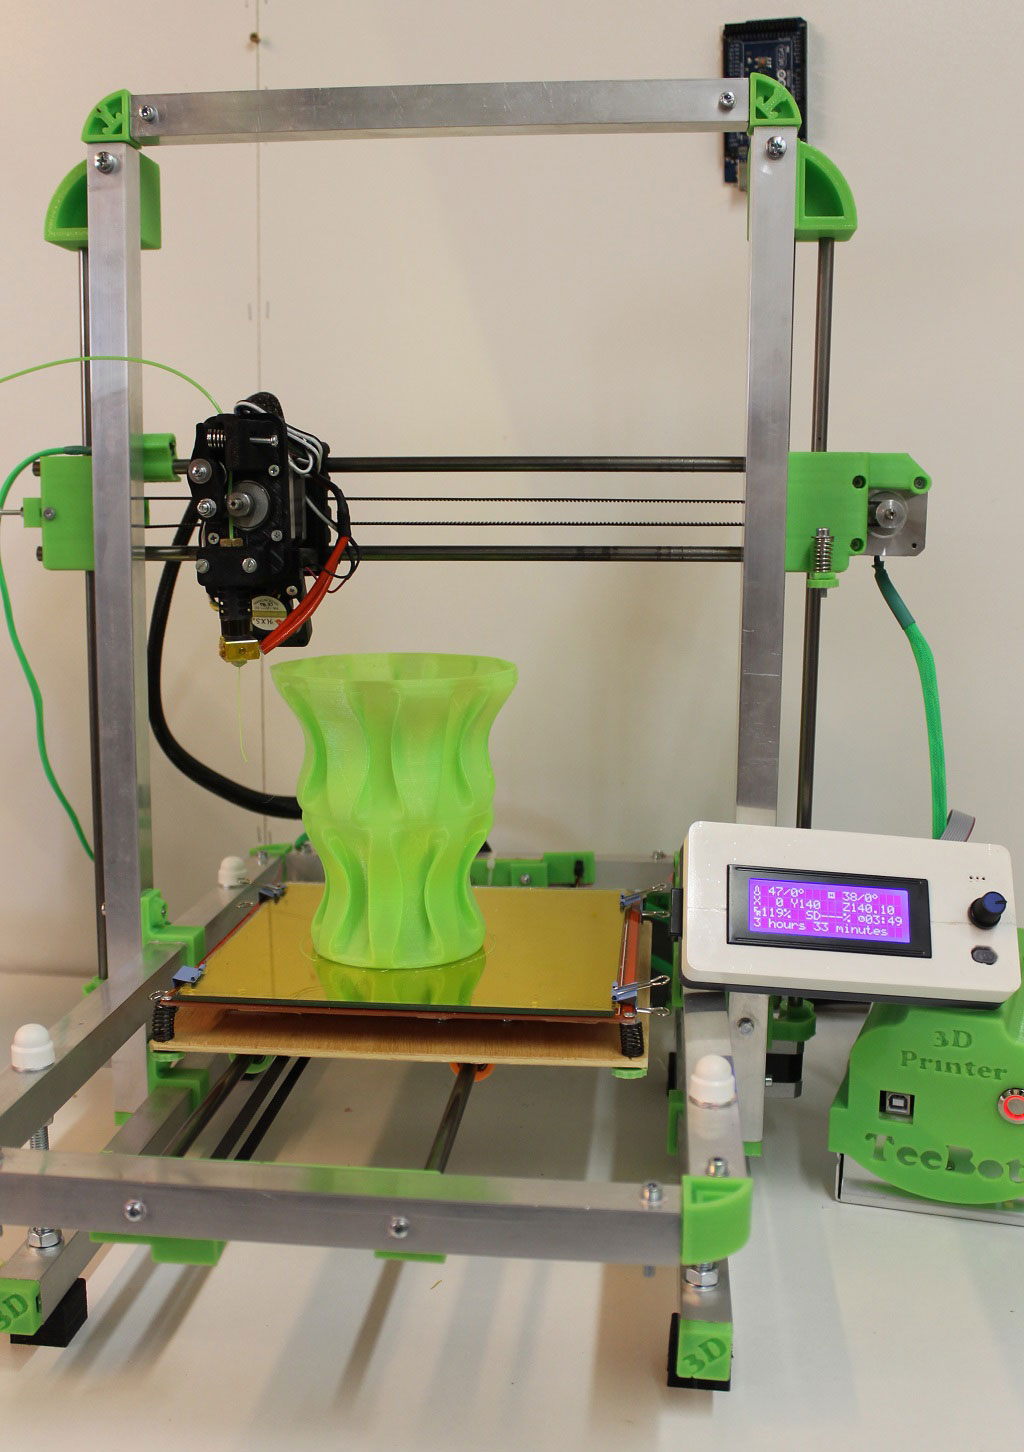 build your own foldable teebotmax 3d printer article